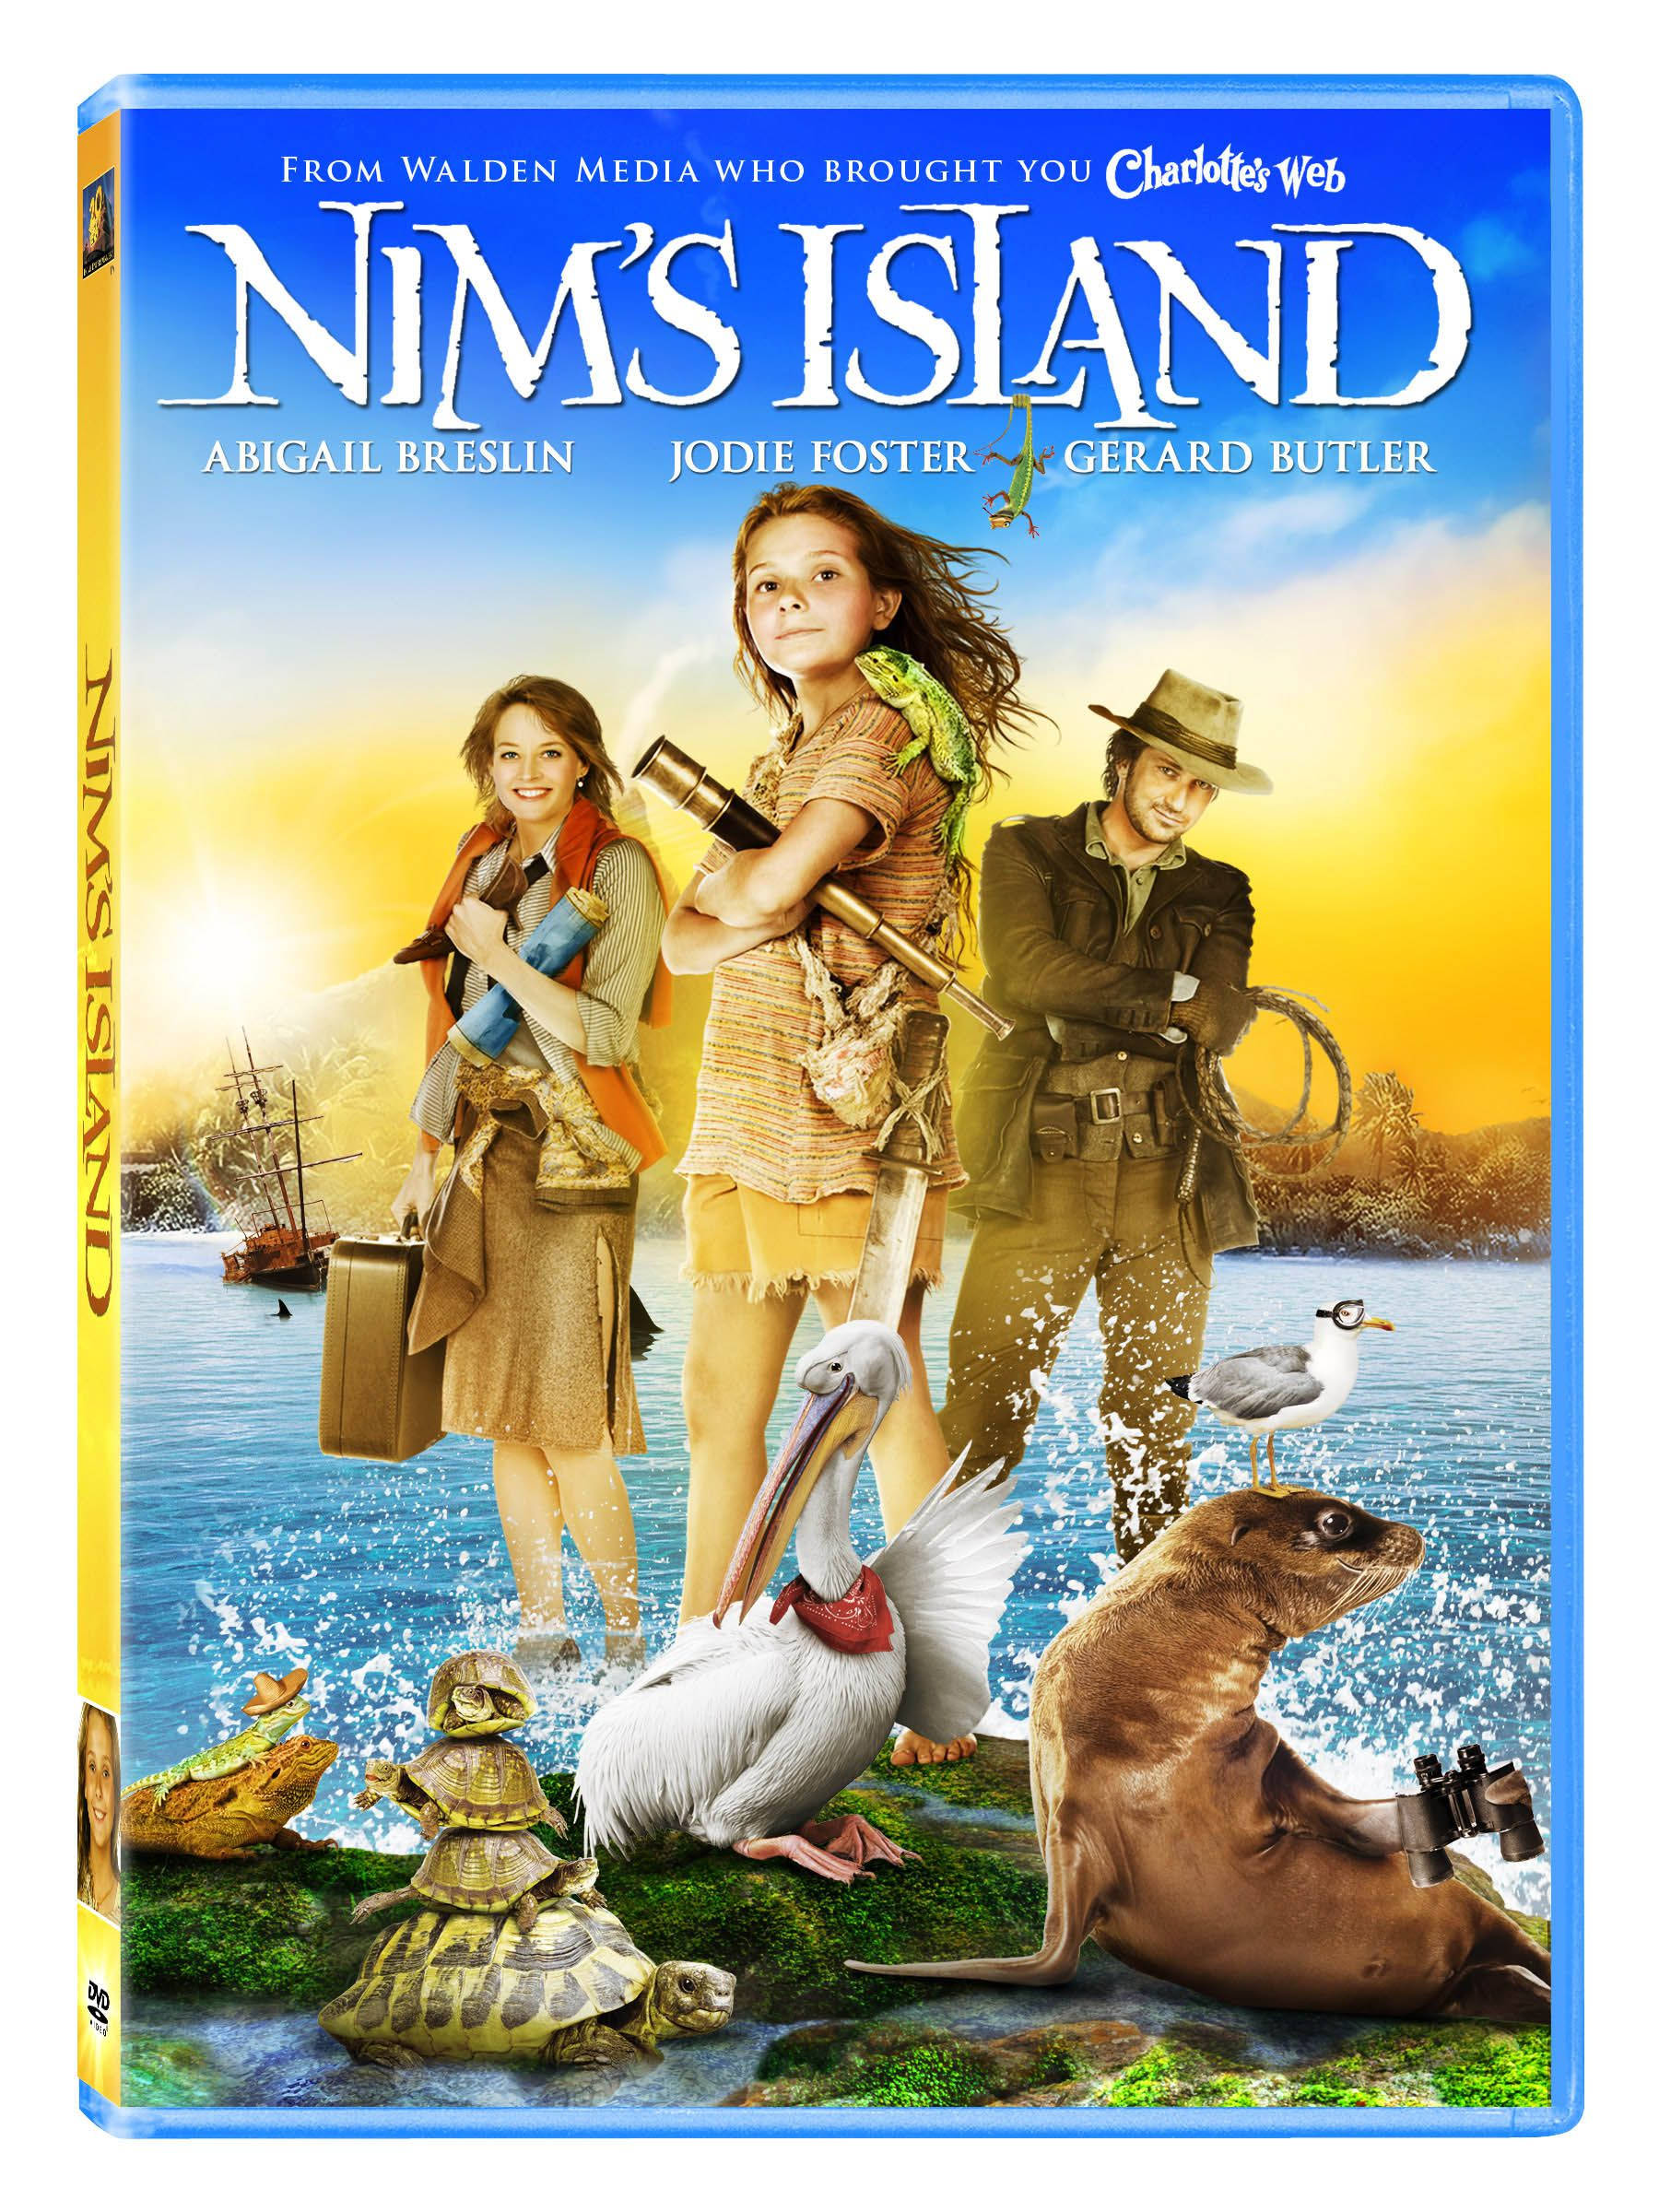 Top Kids Movies Based on Books for Kids Ages 6